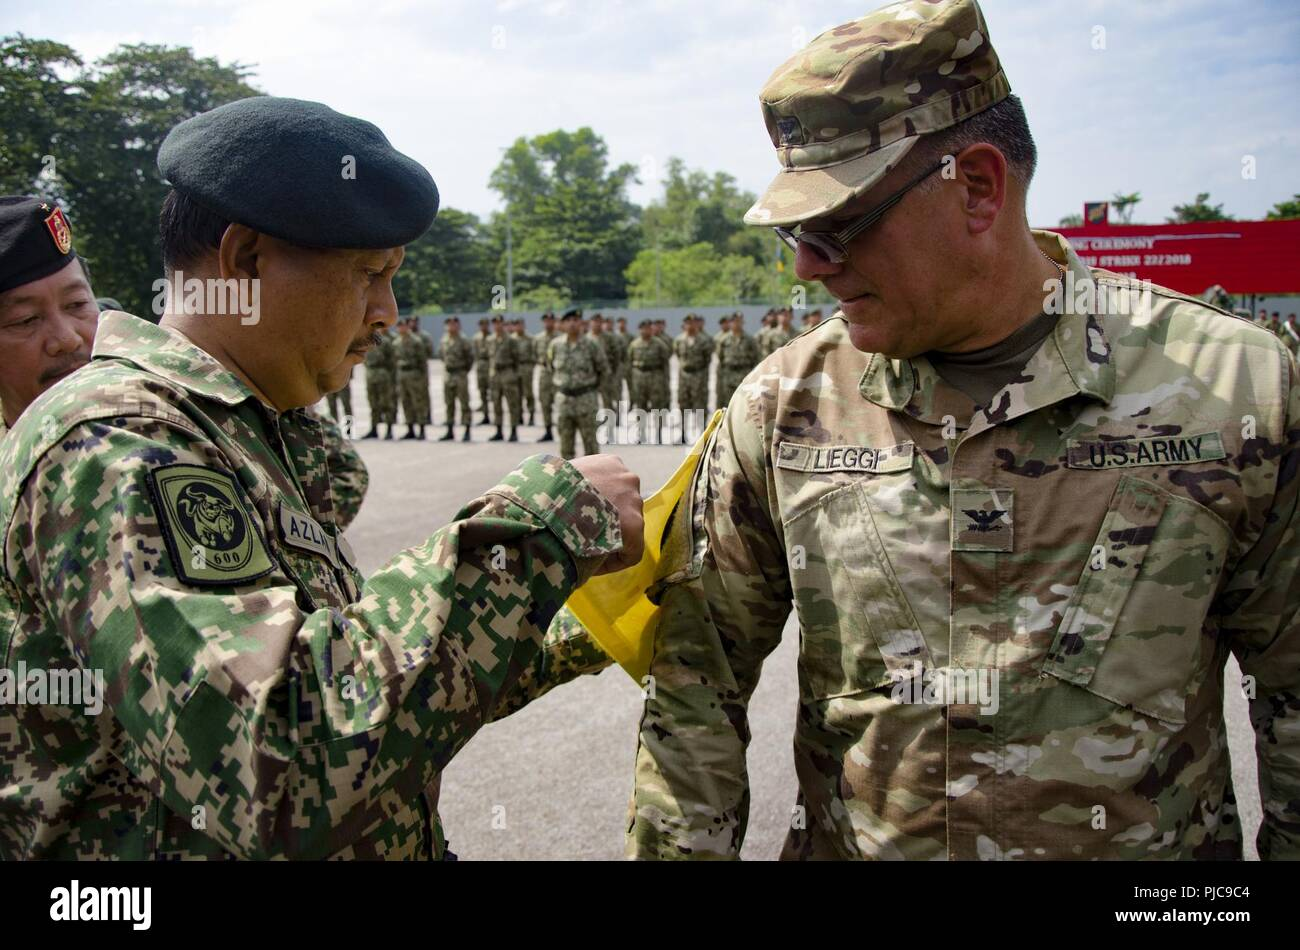 Maj. Gen. Dato HJ Azlan bin Abu Rahman, Chief of Staff, Army Field Command, West Headquarters, Malaysian Army, places a brassard on Col. Anthony Lieggi, Commander, 96th Troop Command, Washington Army National Guard, at the opening ceremony for Exercise Keris Strike, July 23, 2018. Exercise Keris Strike is a bilateral exercise between Malaysia and the U.S., with an emphasis on regional humanitarian assistance and disaster relief operations. Stock Photo